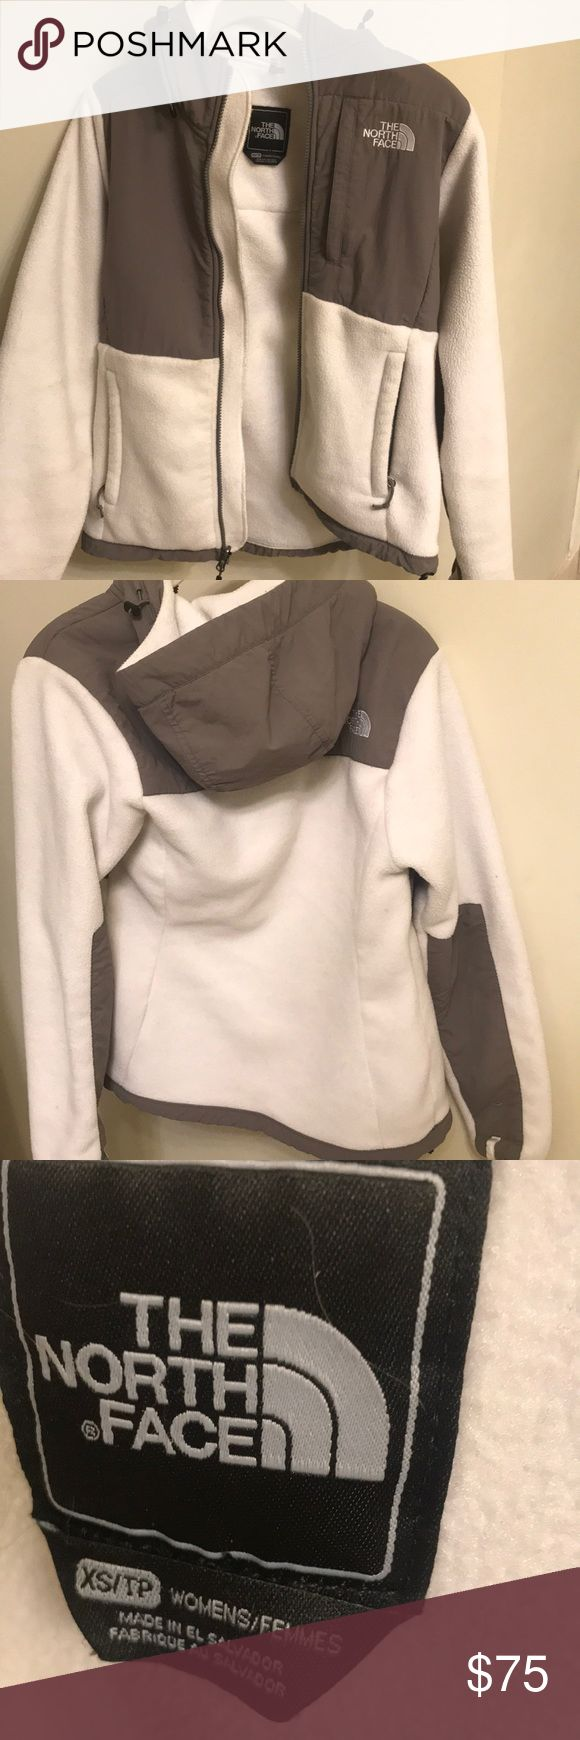 Pristine white North Face Women's fleece jacket LIKE NEW BRIGHT WHITE NORTH FACE North Face Jackets & Coats